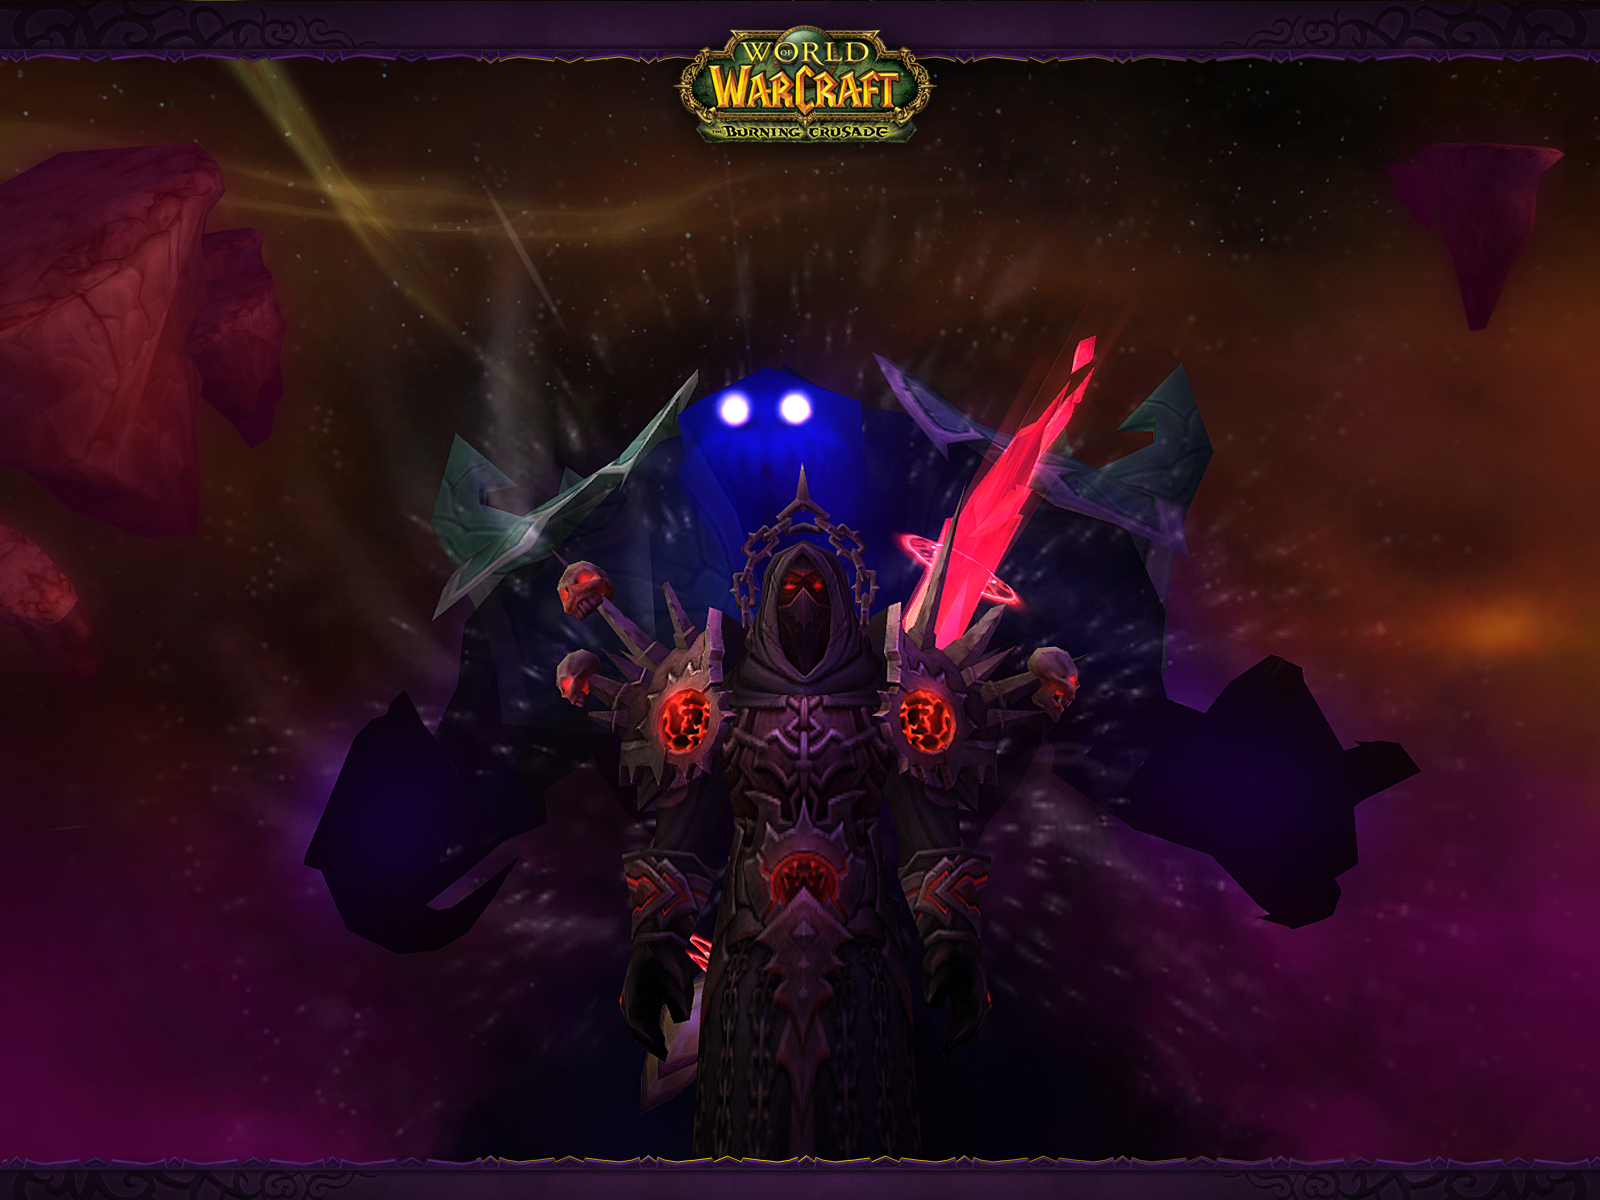 World of Warcraft Warlock Wallpapers HD, HD Desktop Wallpapers